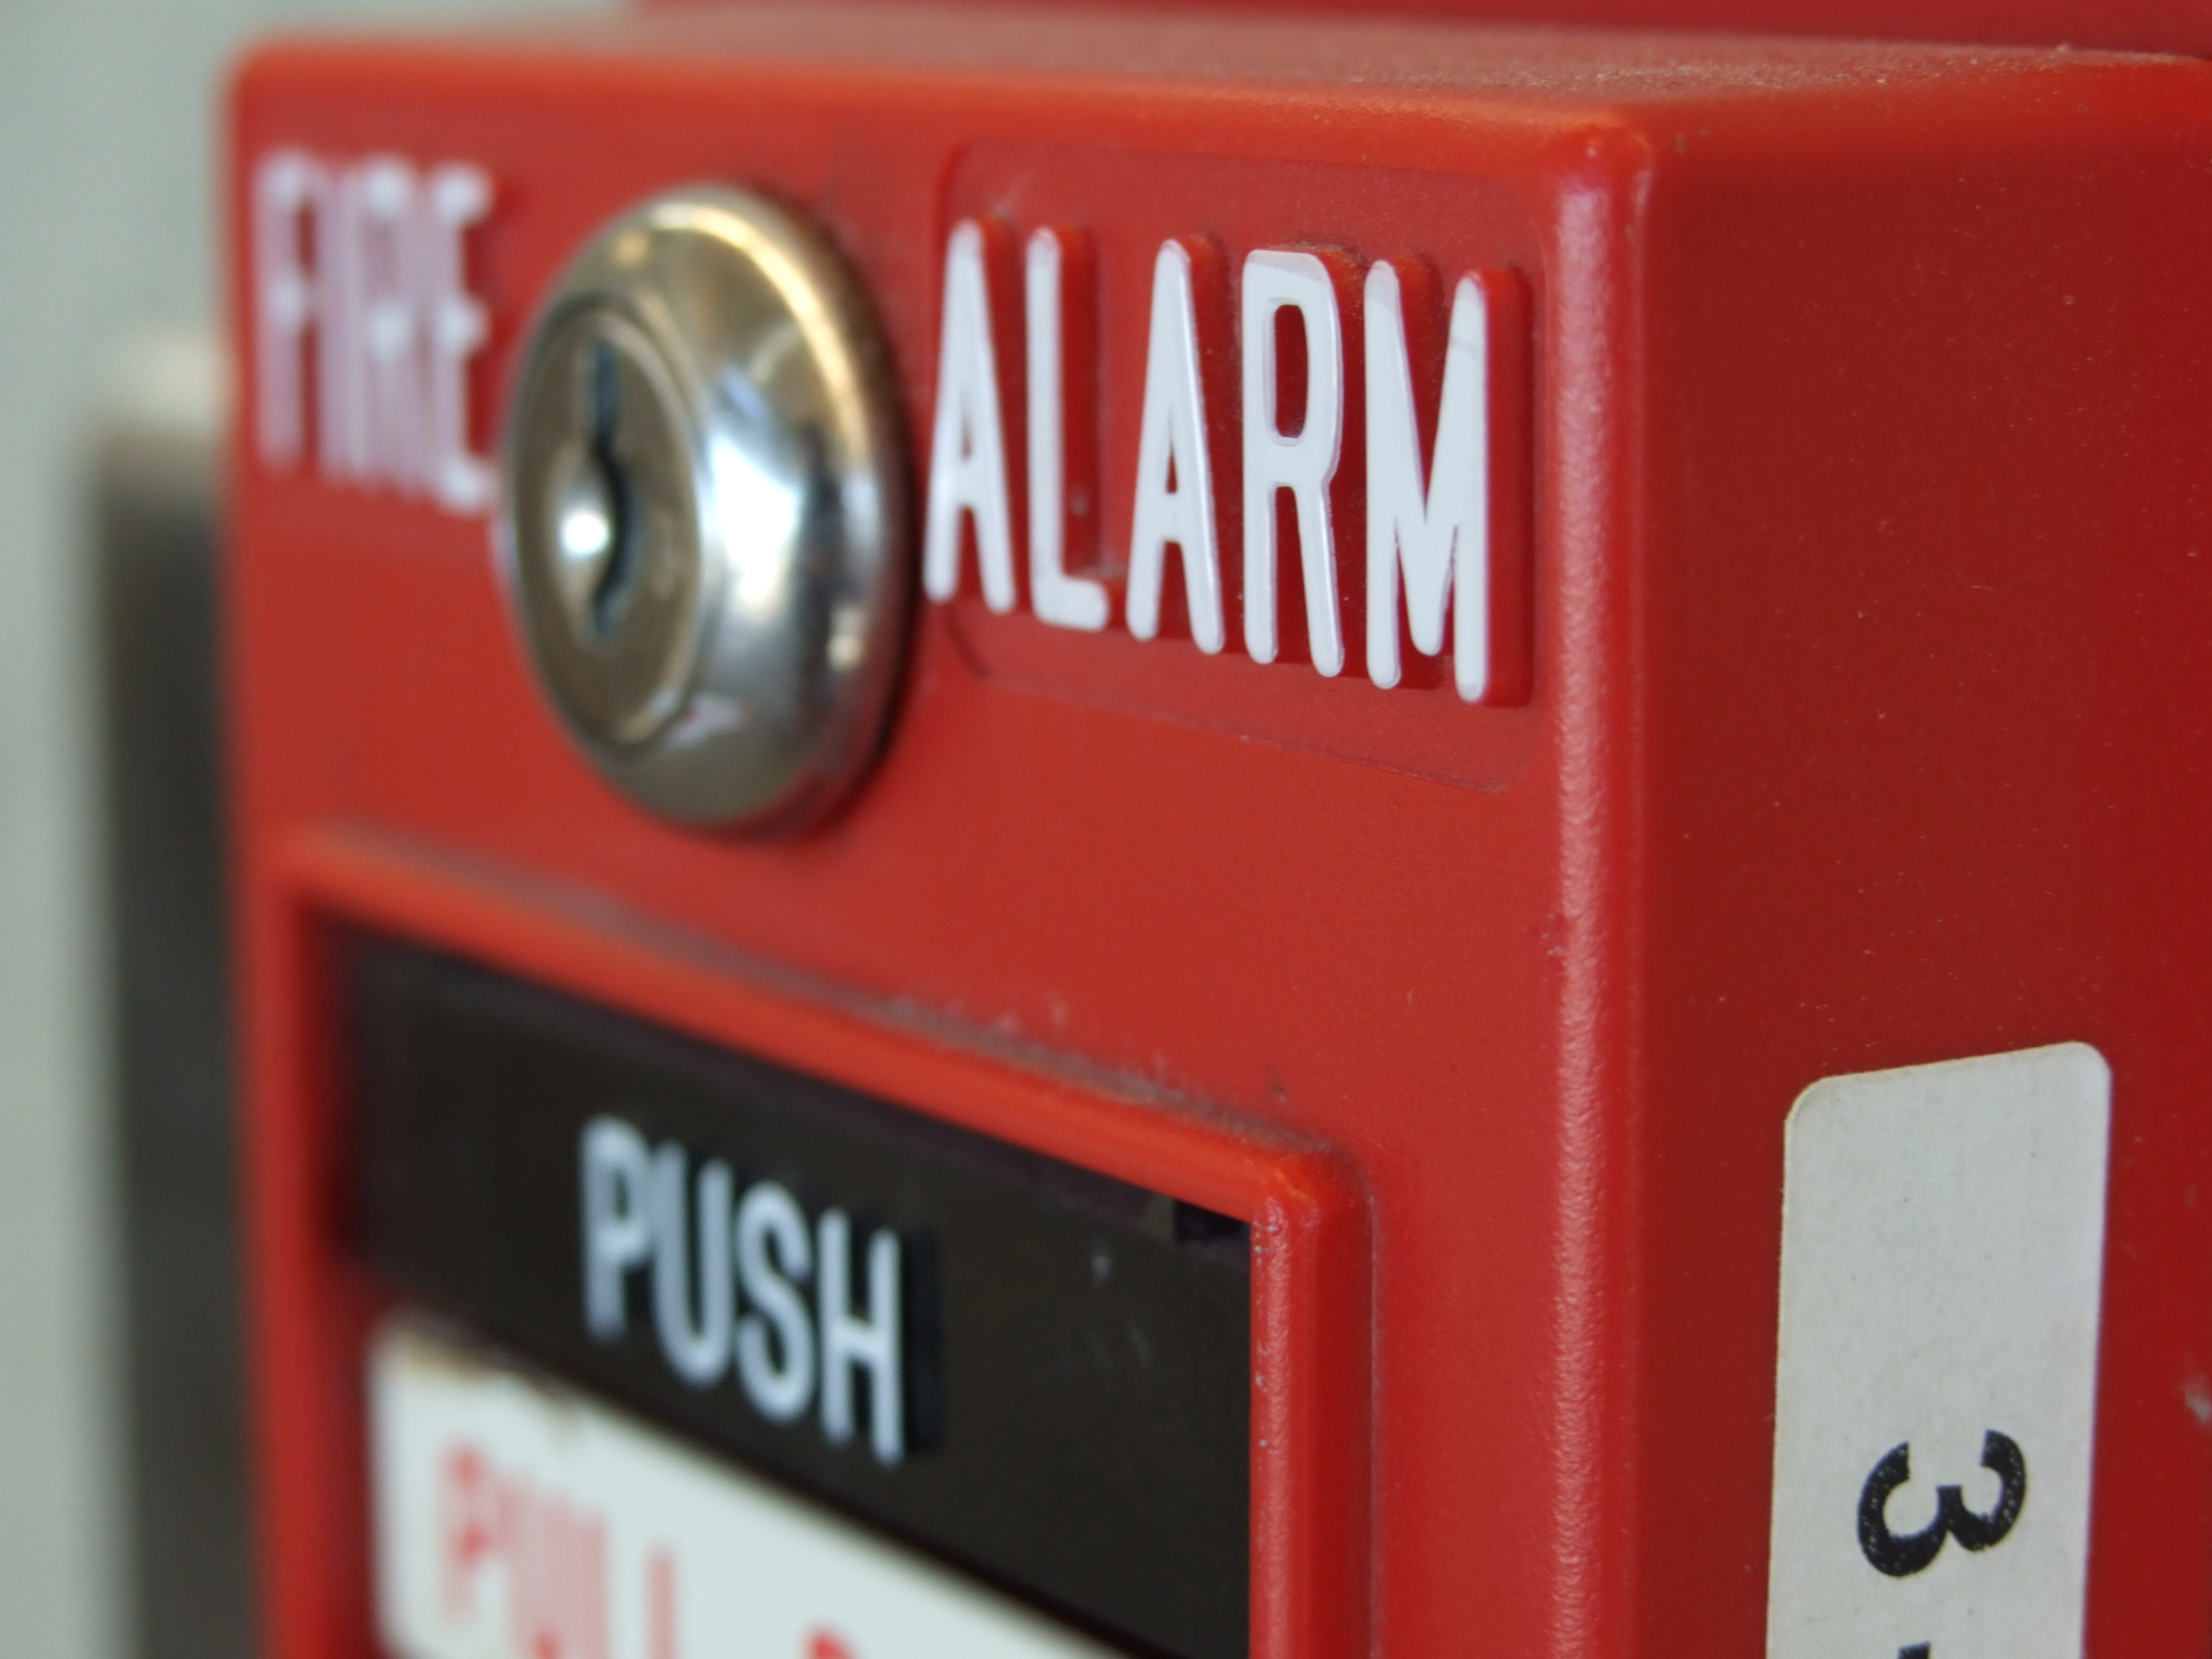 The Fire Alarm